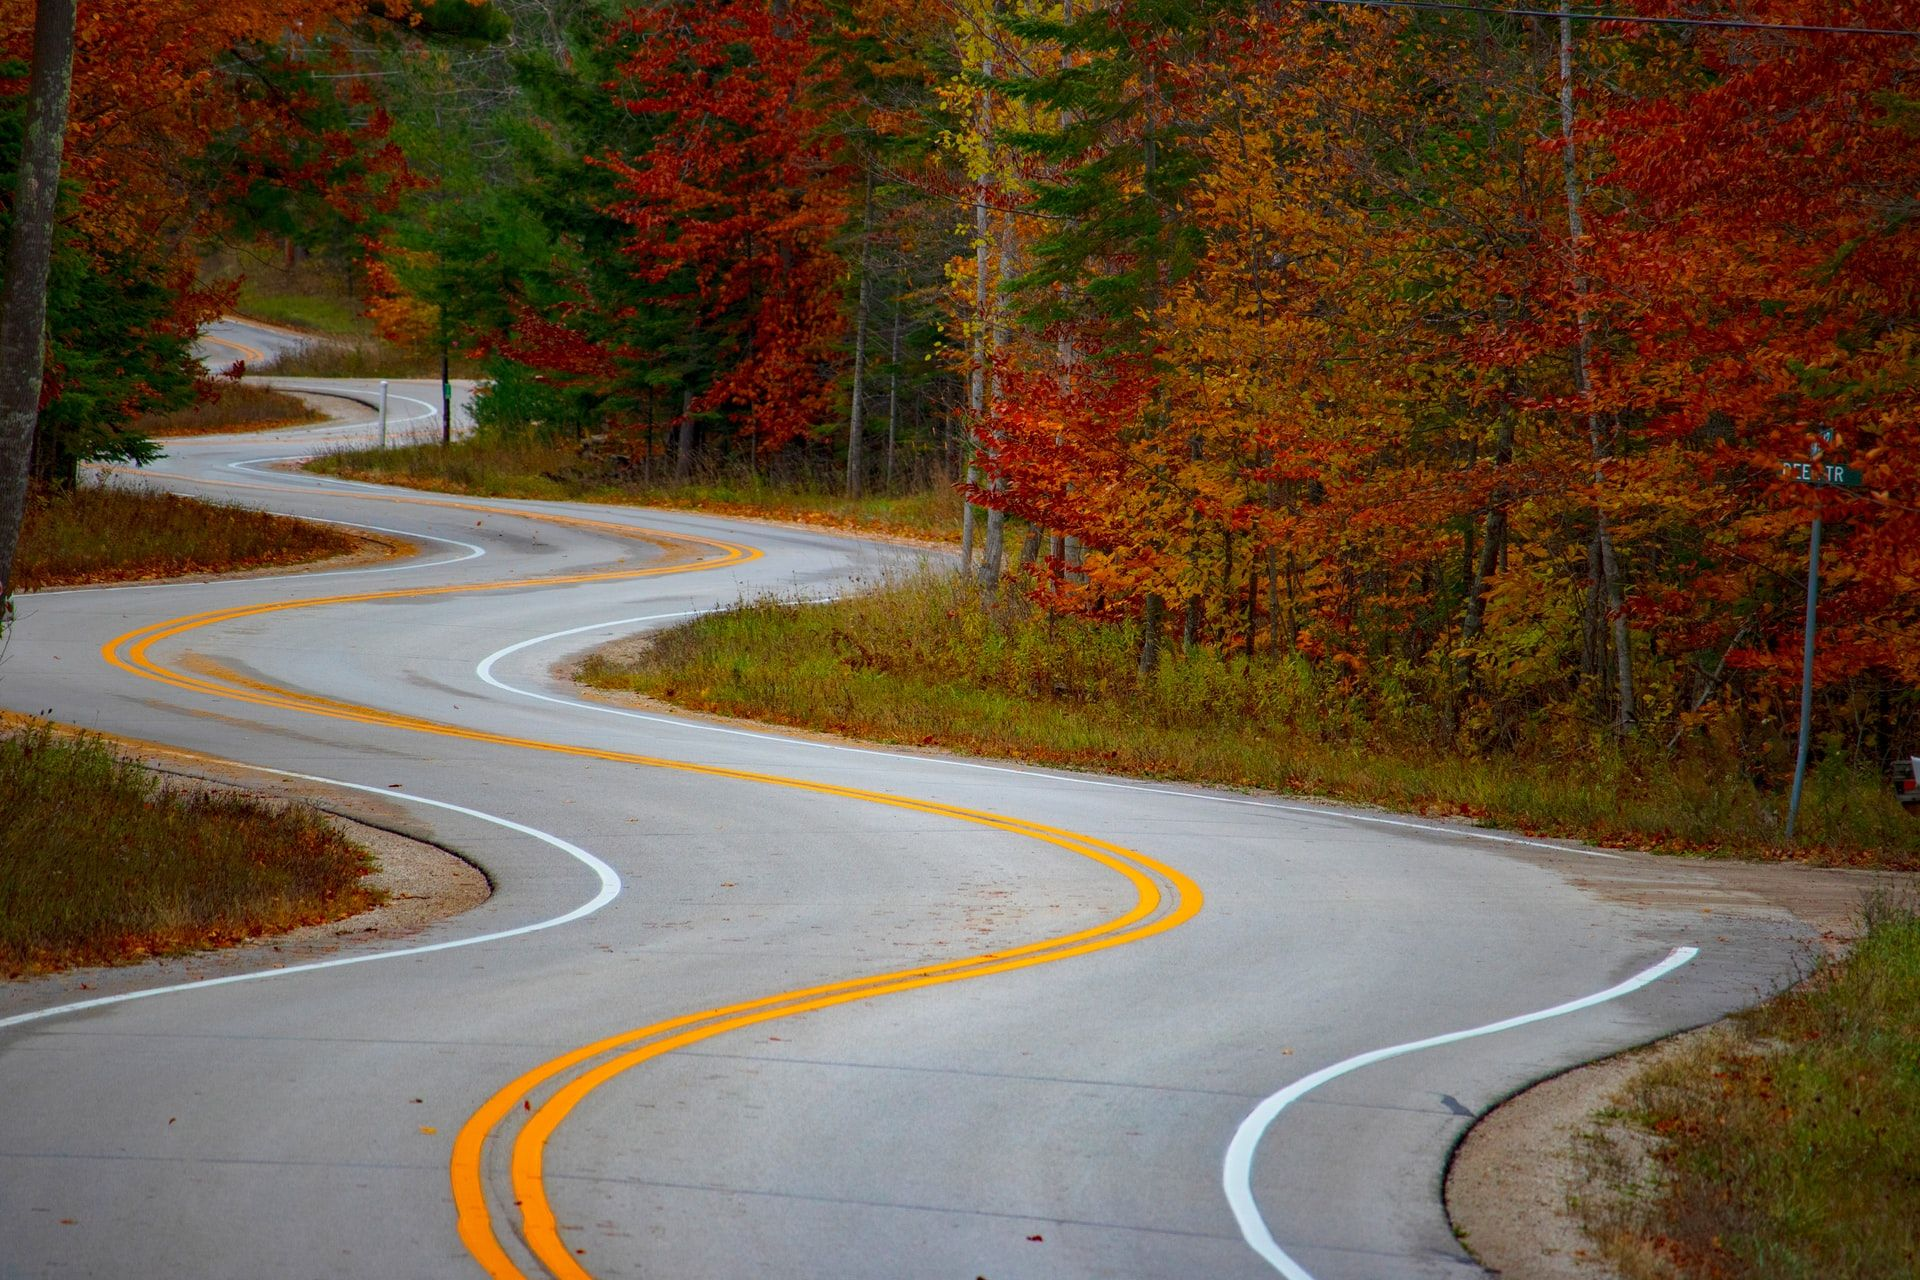 Looking down a very curvy road